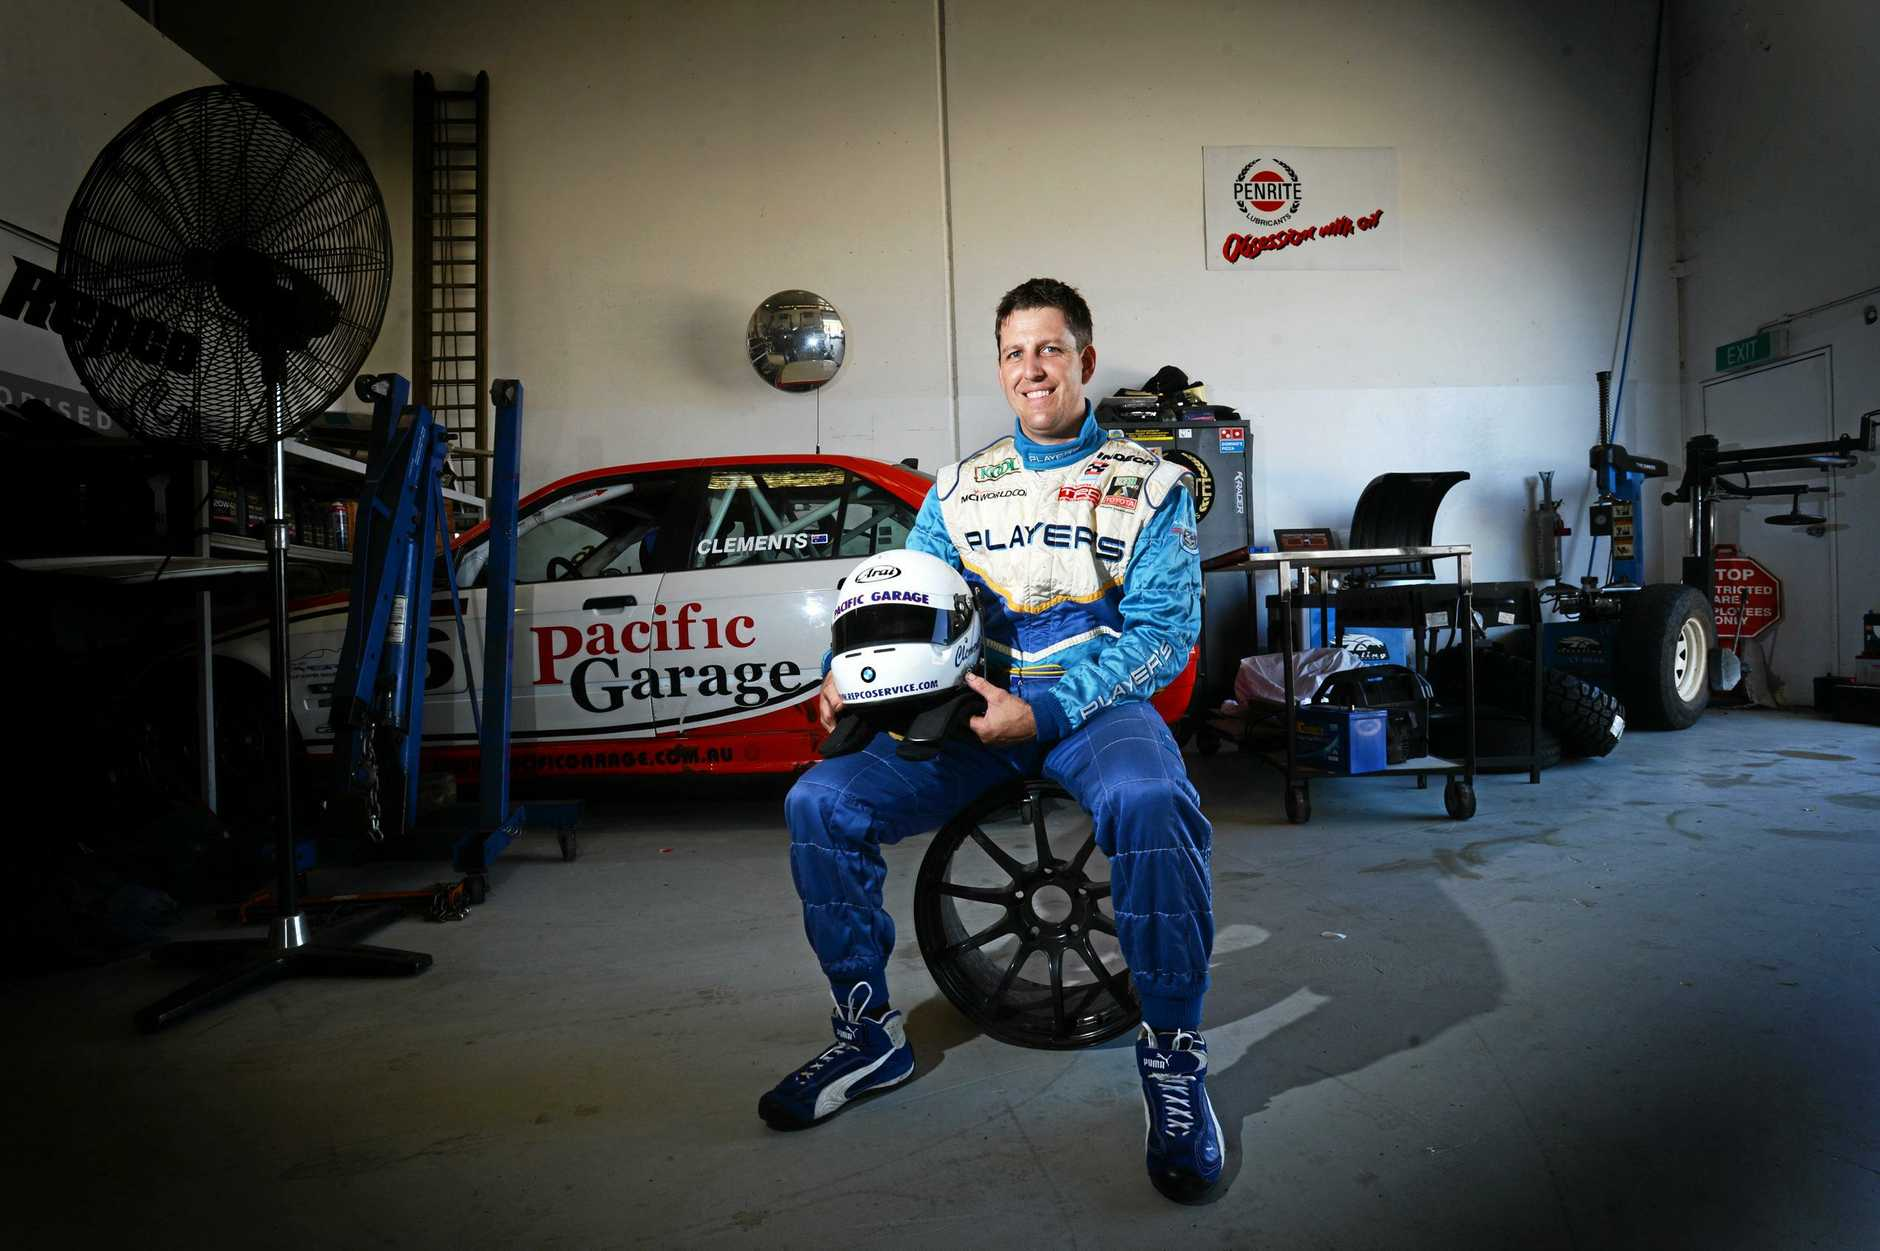 REVVED UP: Jason Clements will be performing demonstration laps in Al Unser Jr's famous 1986 Dominos Indy car.